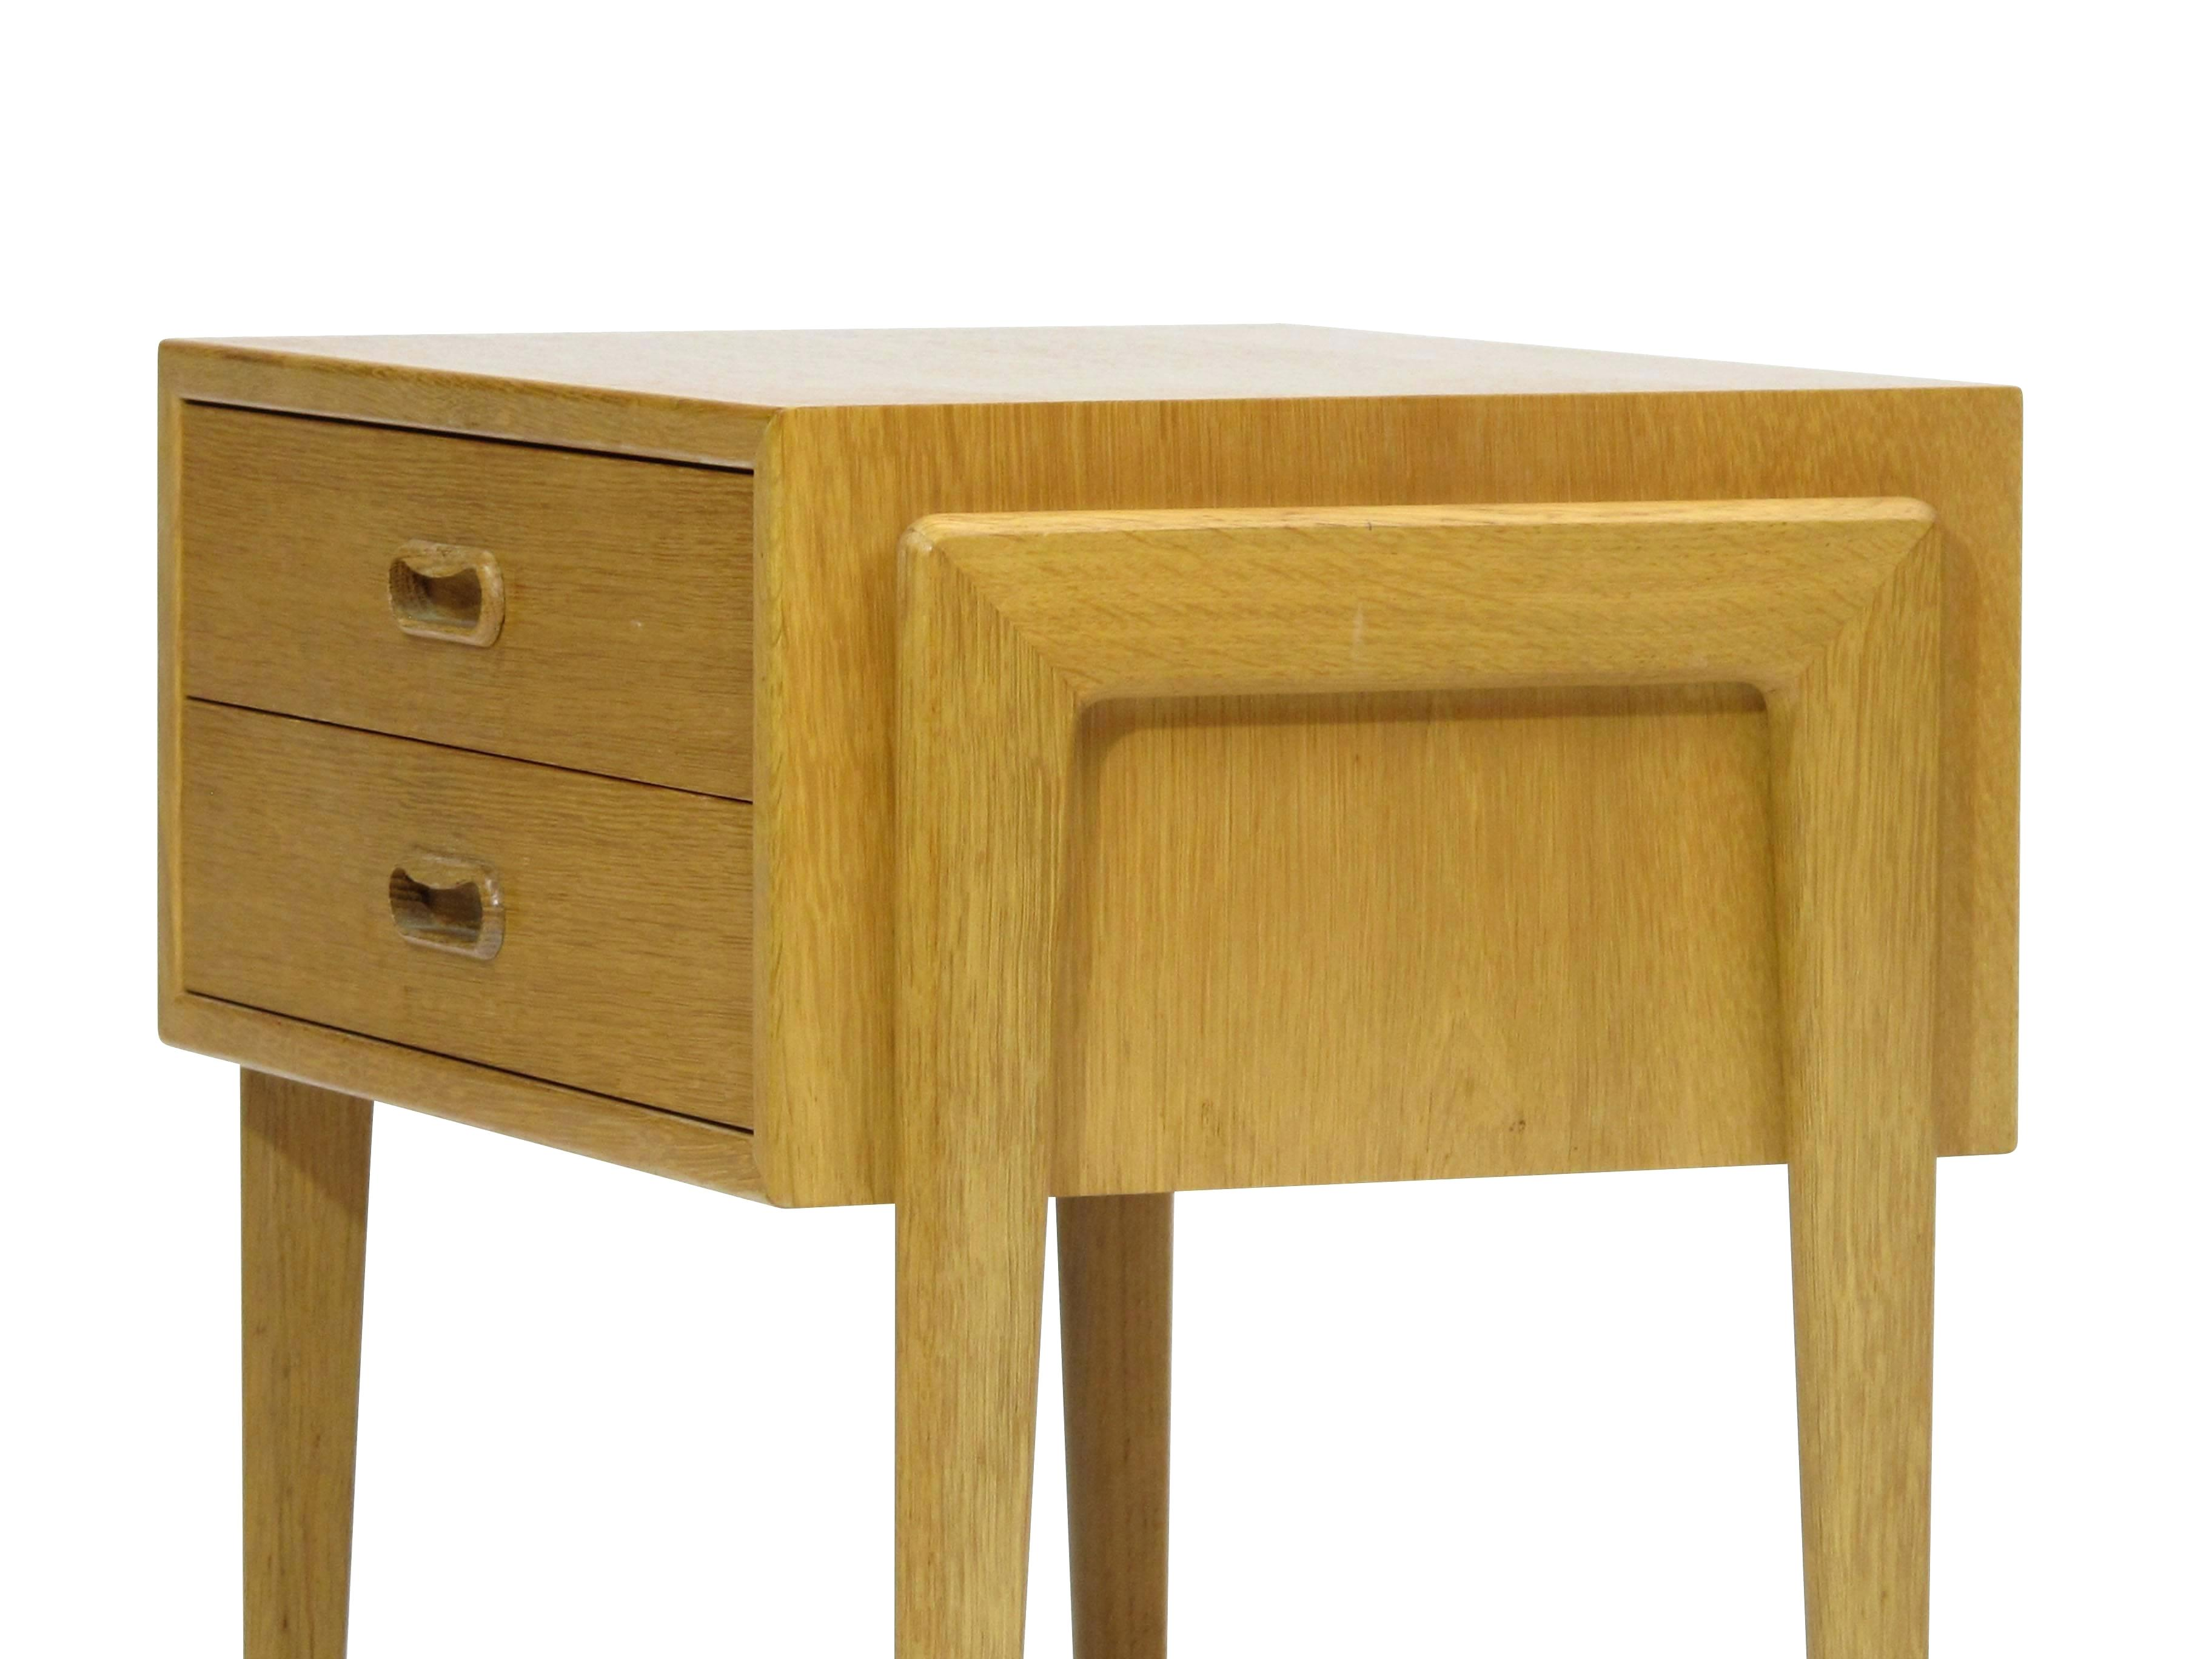 barnwood end tables probably terrific great white oak table nightstand stained shyamaprasad info pair danish nightstands side for veneer foot farmhouse solid wood trunk target low